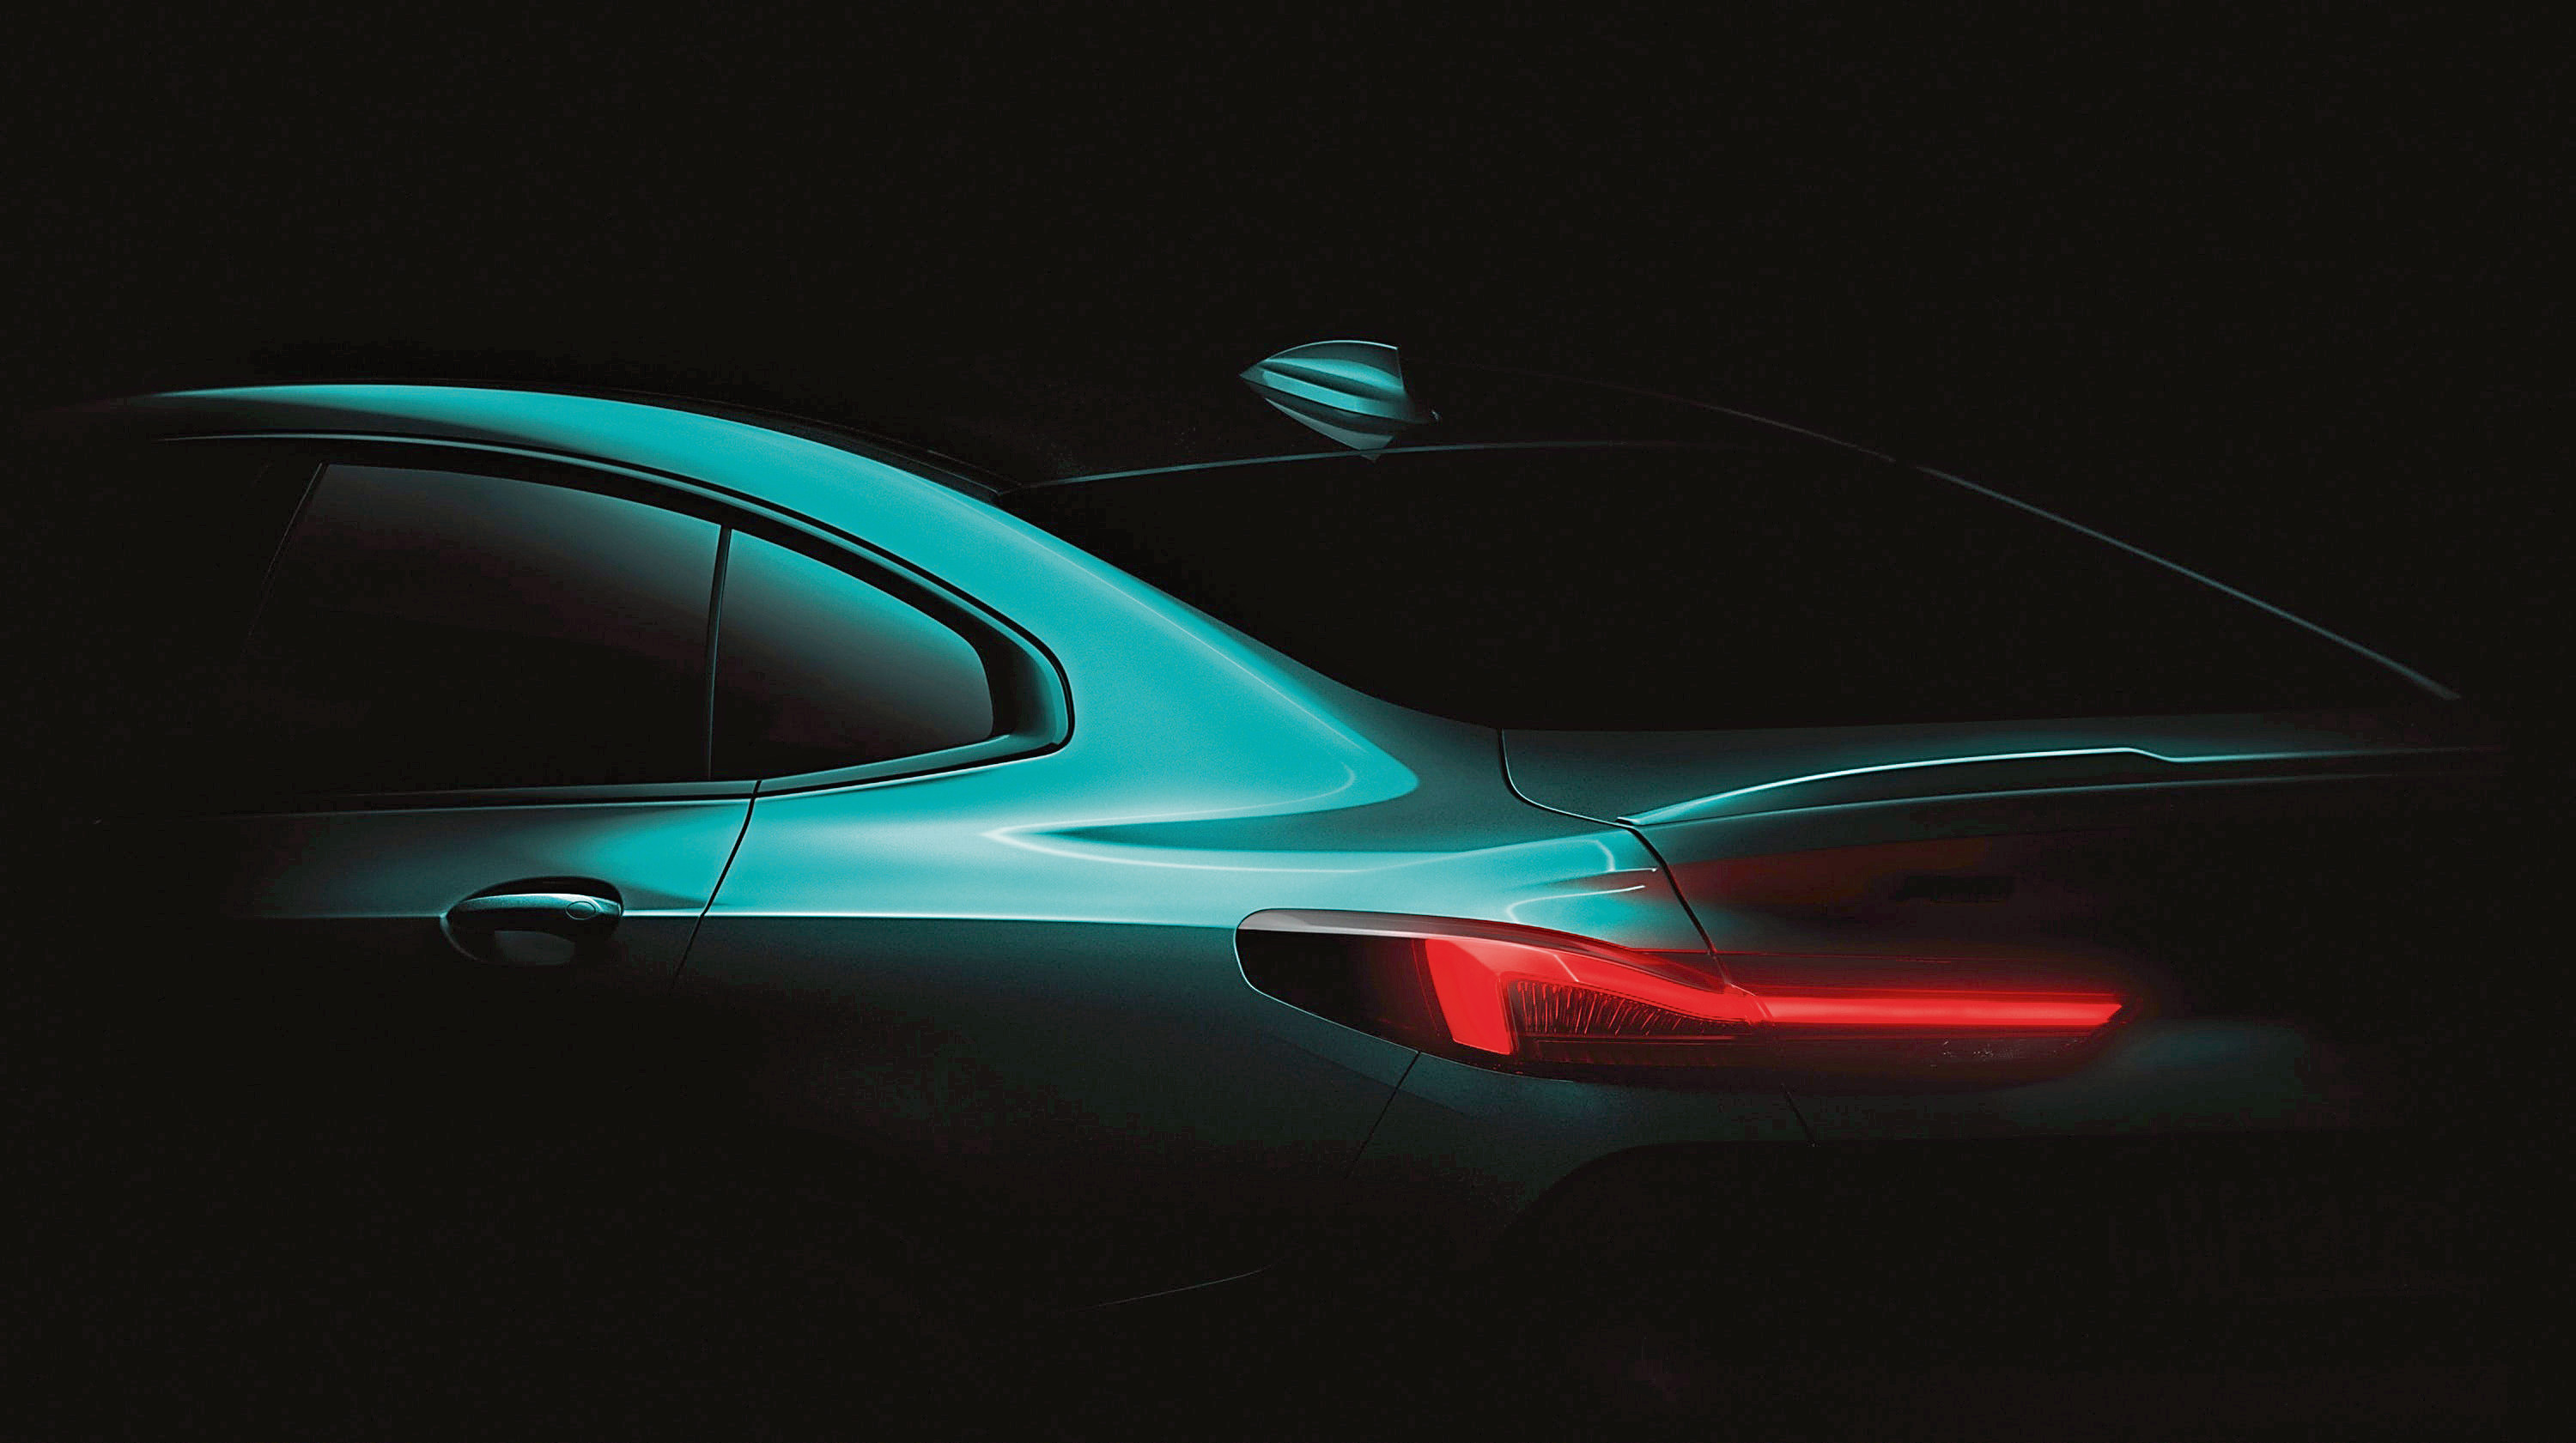 BMW teases 2 Series Gran Coupe